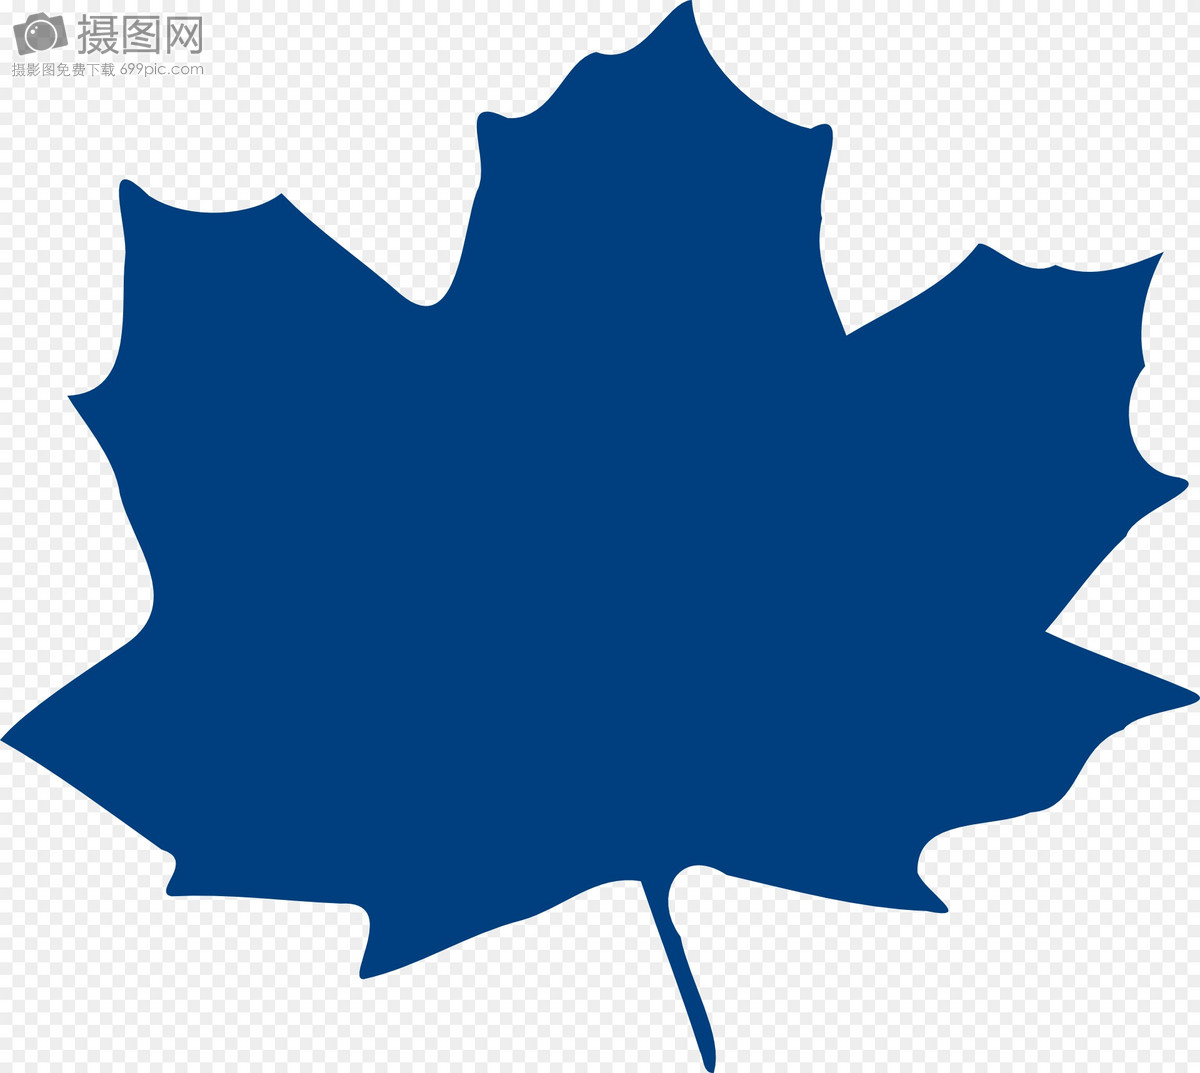 Blue Maple Leaf Template Imagesgraphic Elements Pictures